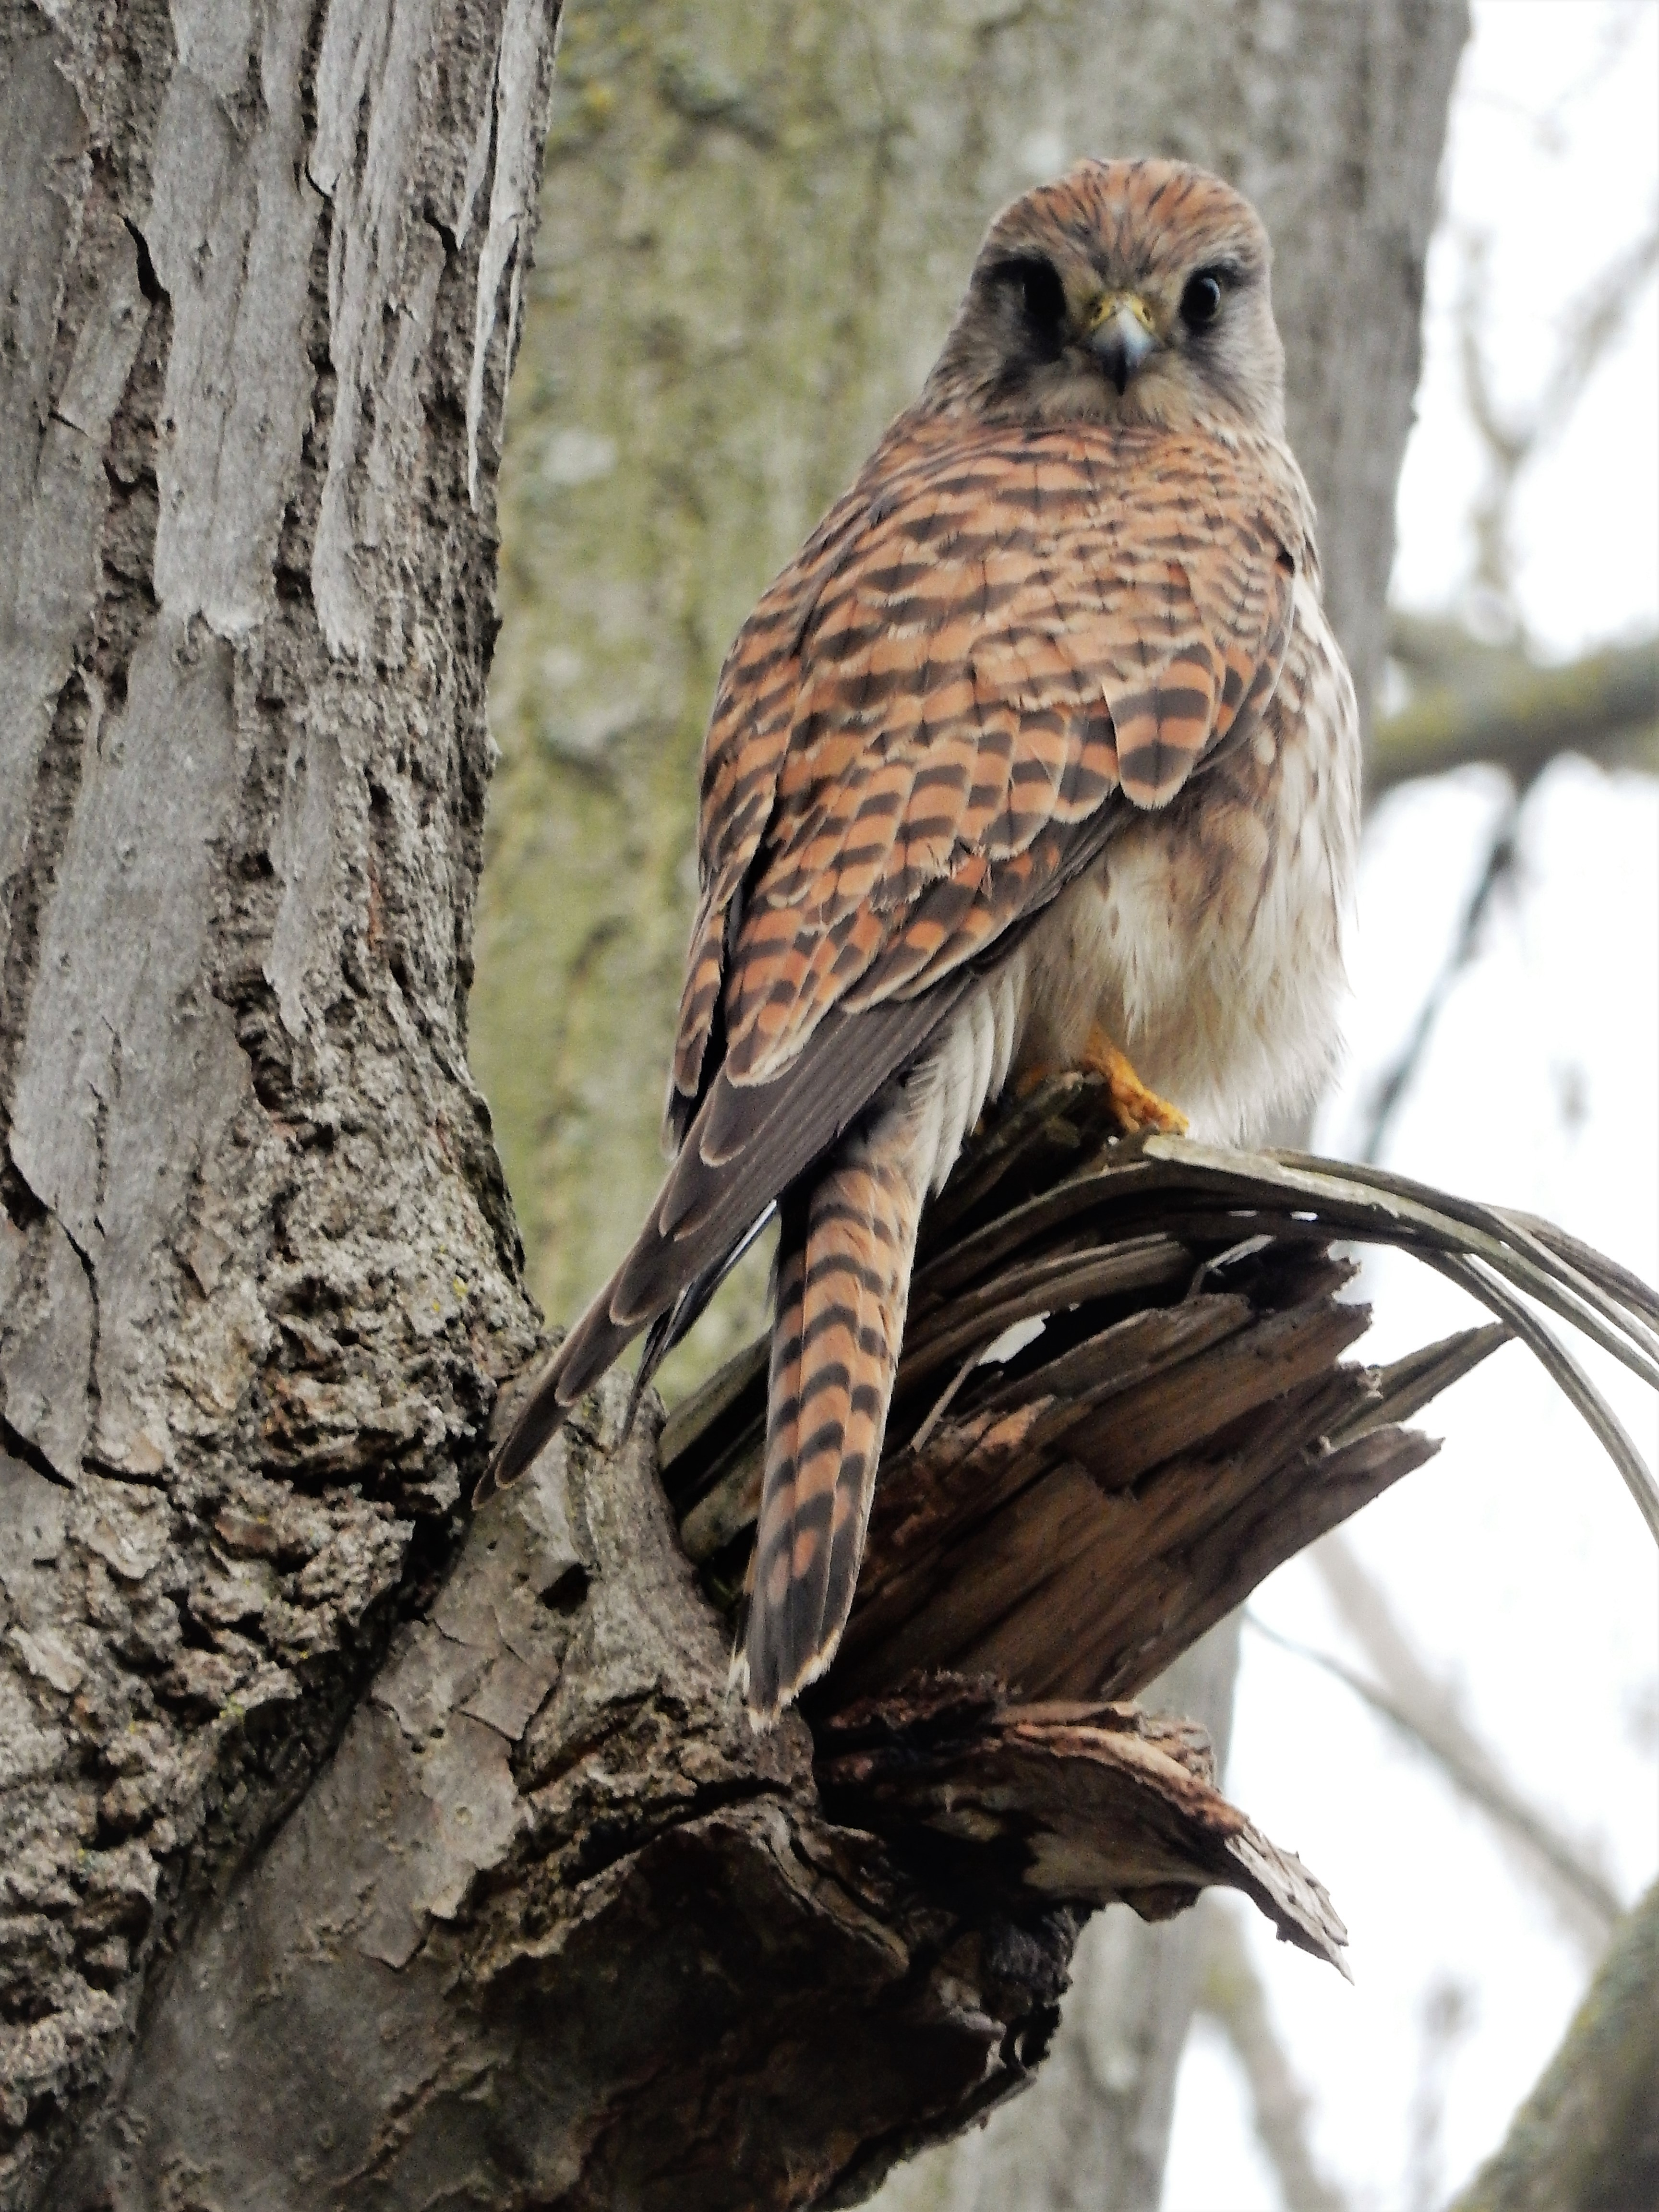 Kestrel in a tree from curved beak to striped tail feathers looking directly at you.